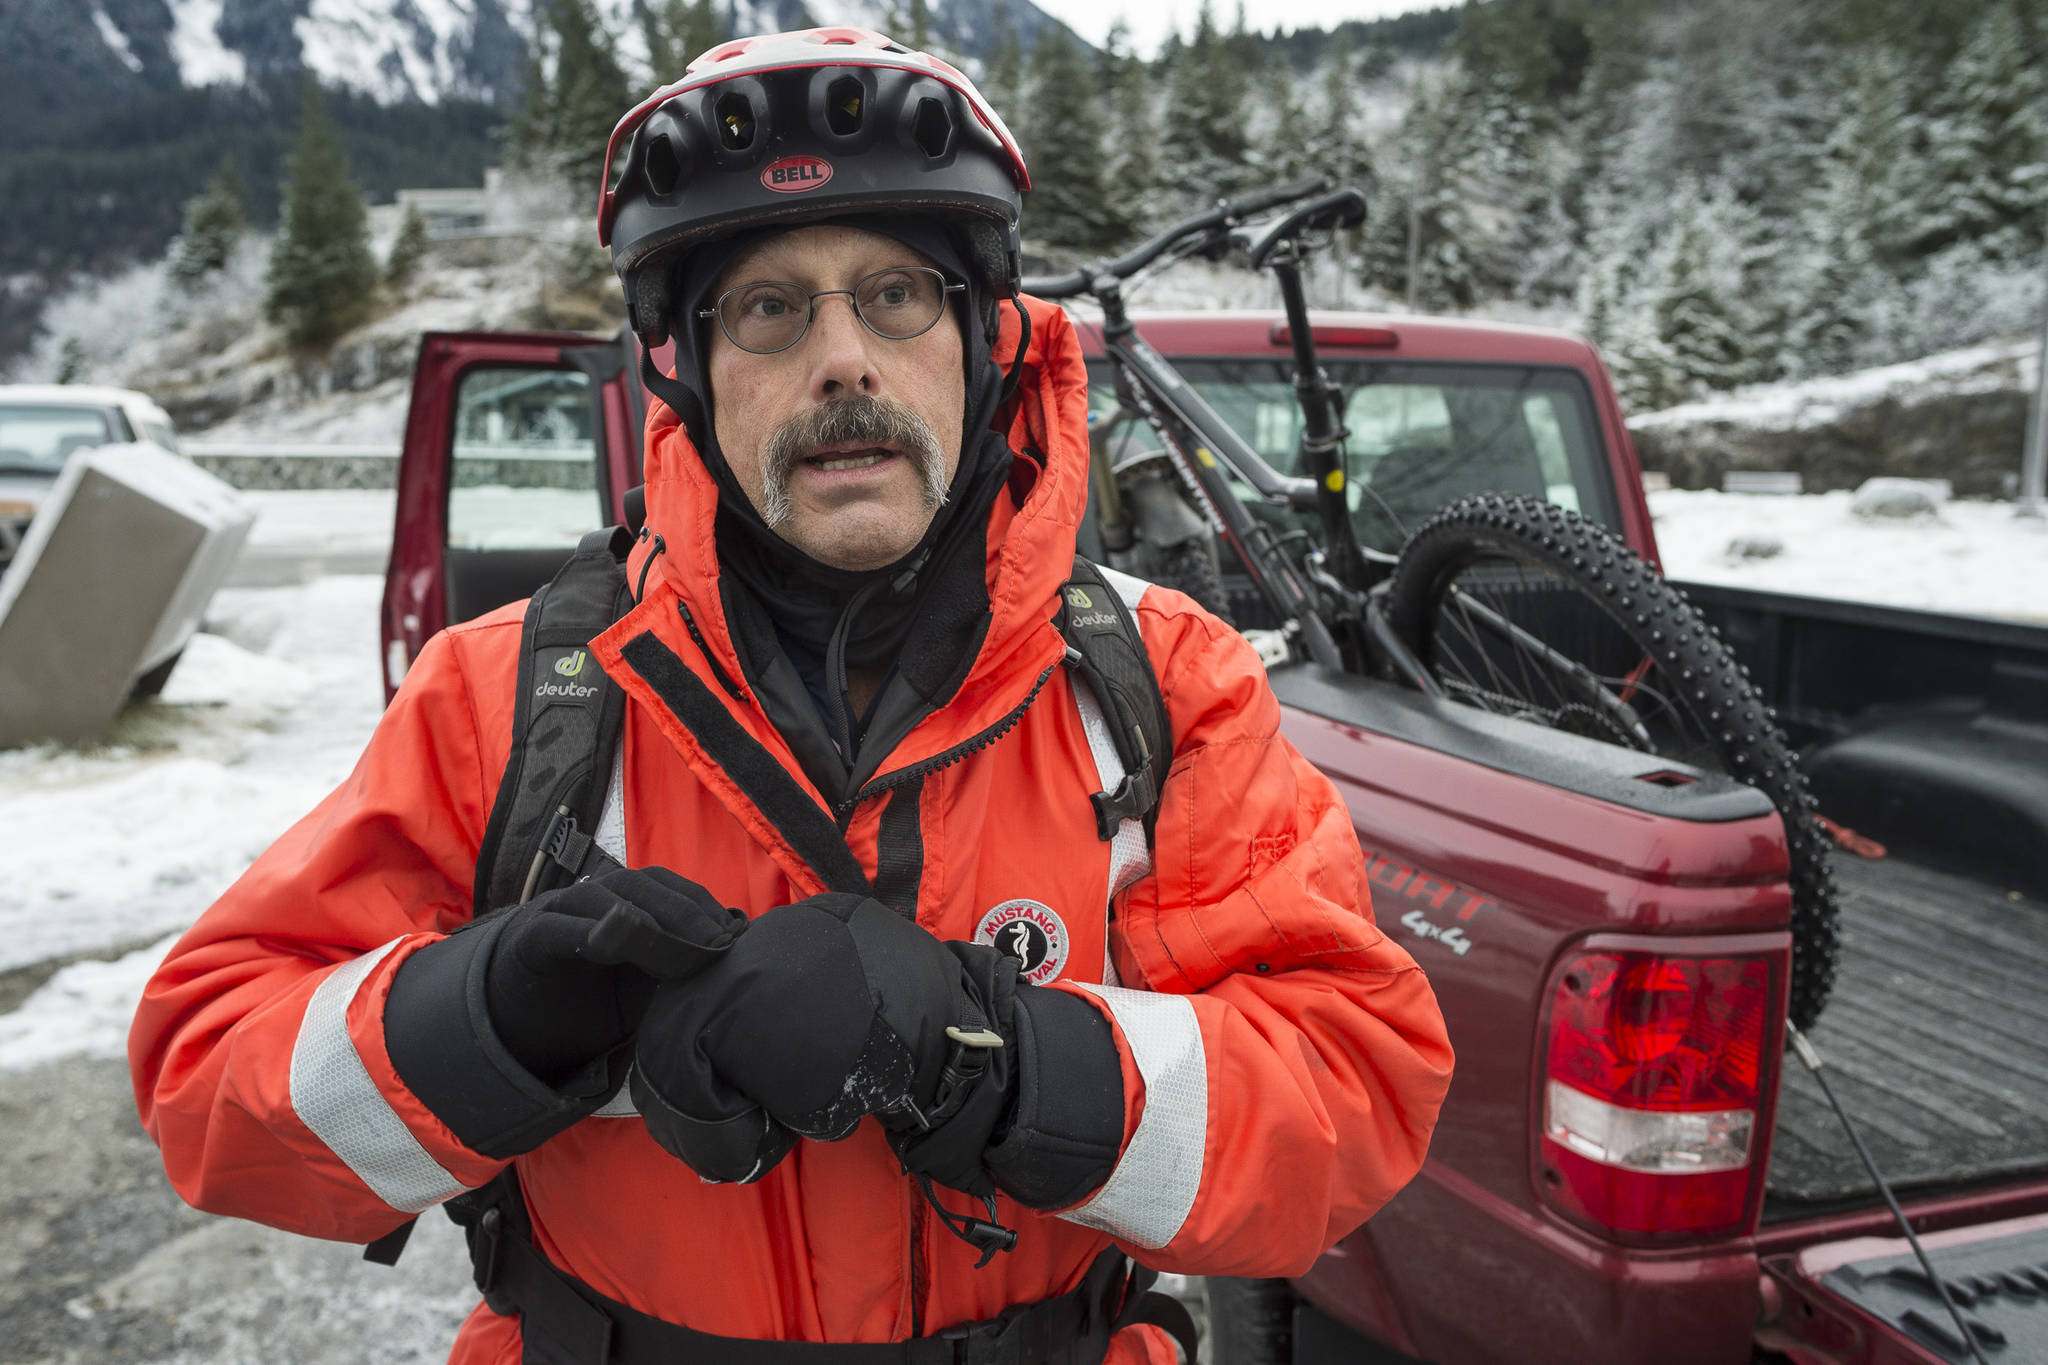 """Bob Funk retells his story on Monday, Jan. 7, 2019, of falling through thin ice while riding his bicycle on Mendenhall Lake near the face of the Mendenhall Glacier on Sunday. He was rescued by a skater who was carrying a throw rope. Funk said, """"I went in and I think adrenaline took care of the first initial cold impact. I was busy working to get up on the ice and when I would it would break out from under me. I don't know if I had enough in the tank to get myself out."""" (Michael Penn 